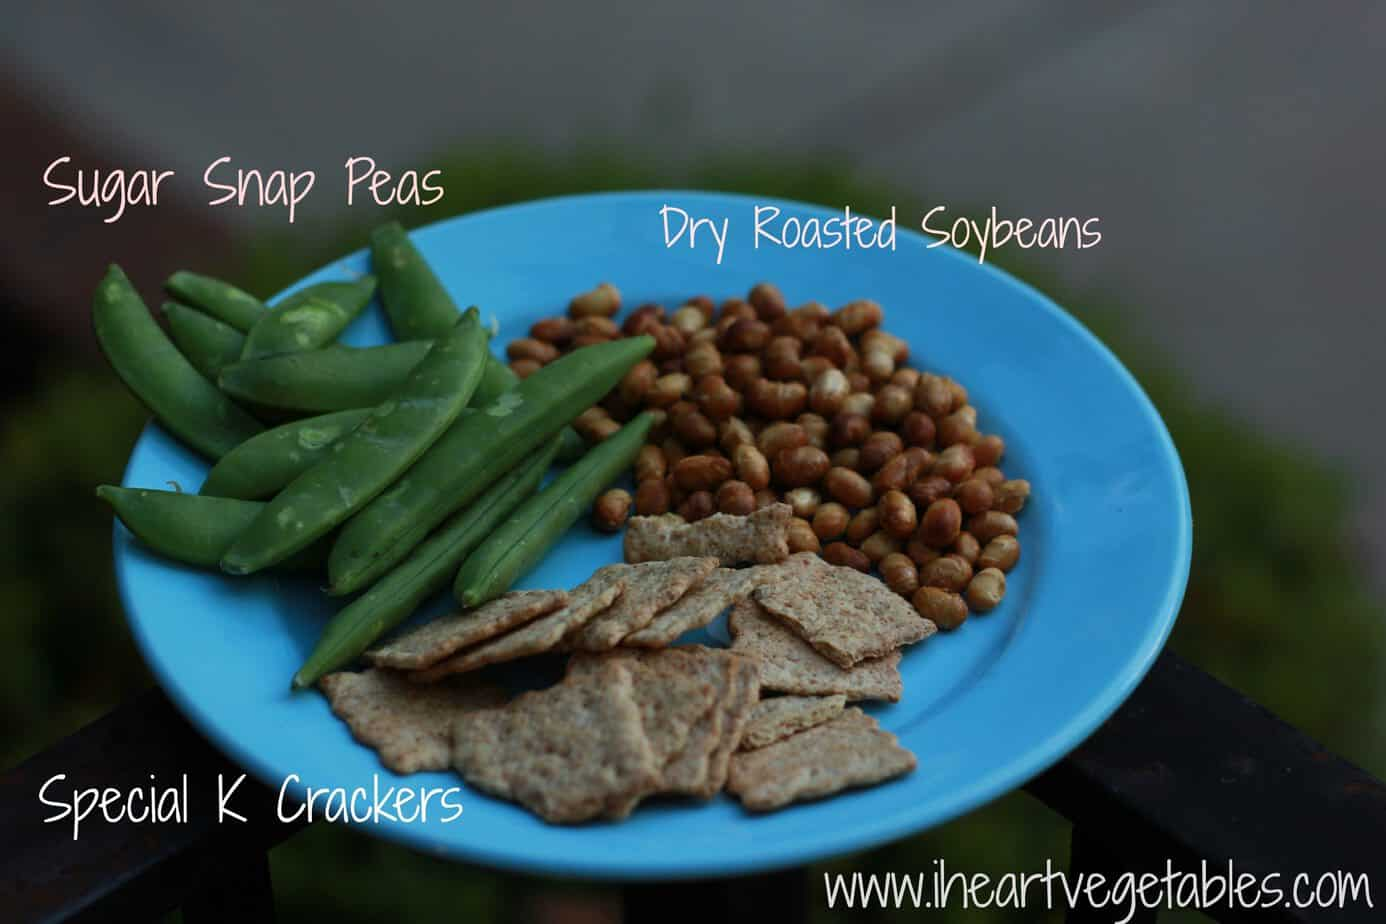 Peas Crackers and Soybeans